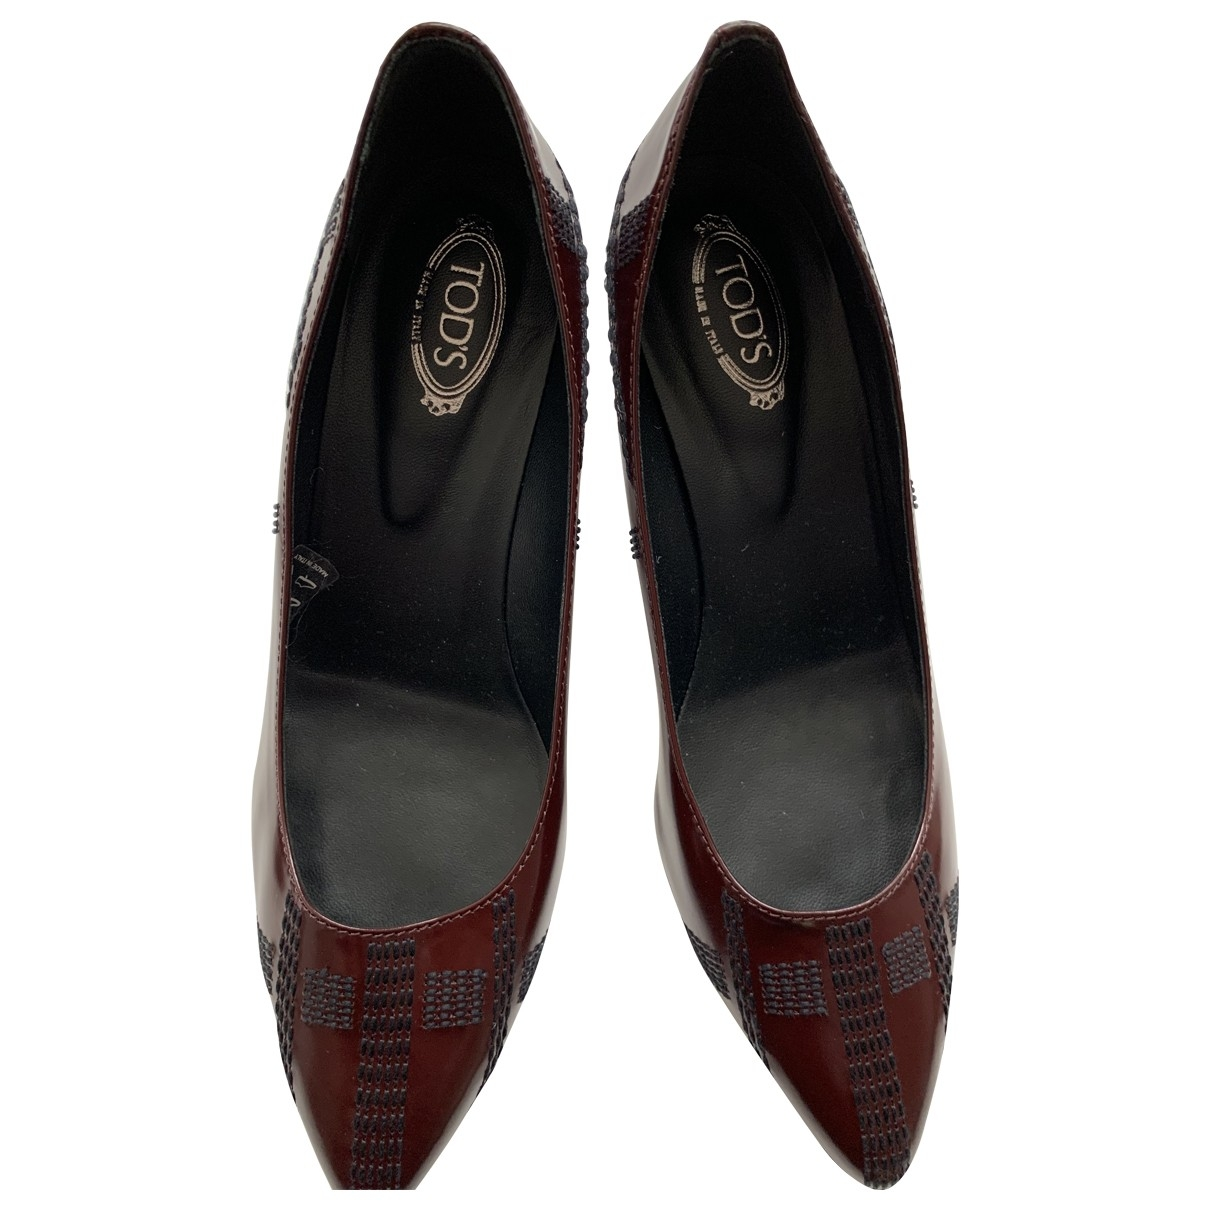 Tod's \N Burgundy Patent leather Heels for Women 37 EU